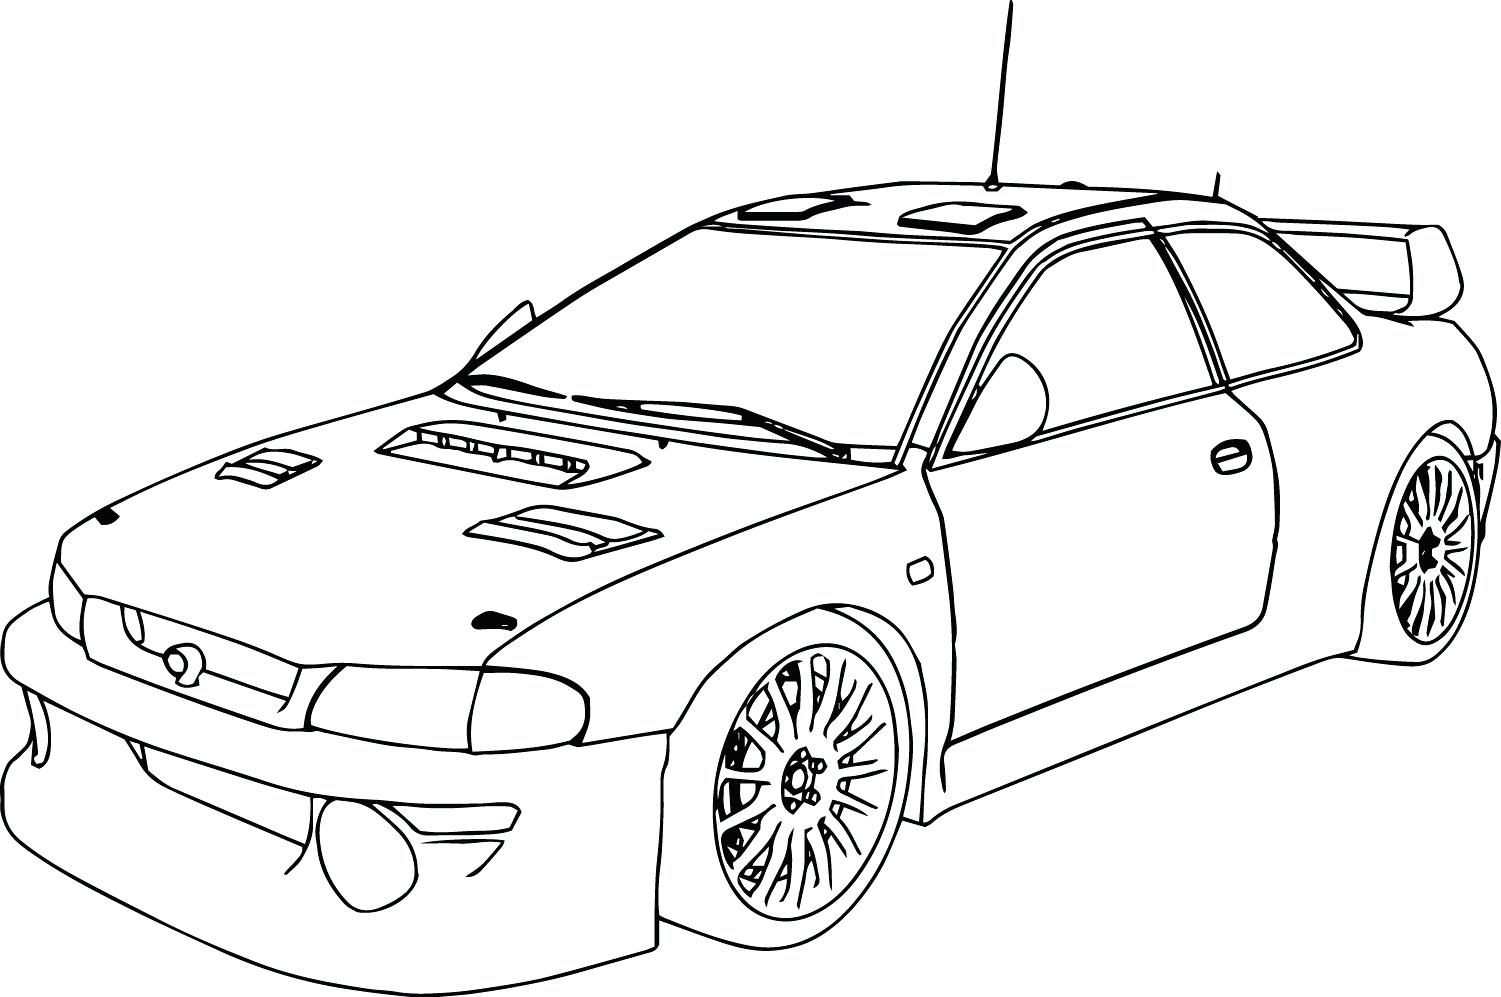 1501x997 Coloring Pages For Adults Only Page Car Crash Drawing Crashed Cars